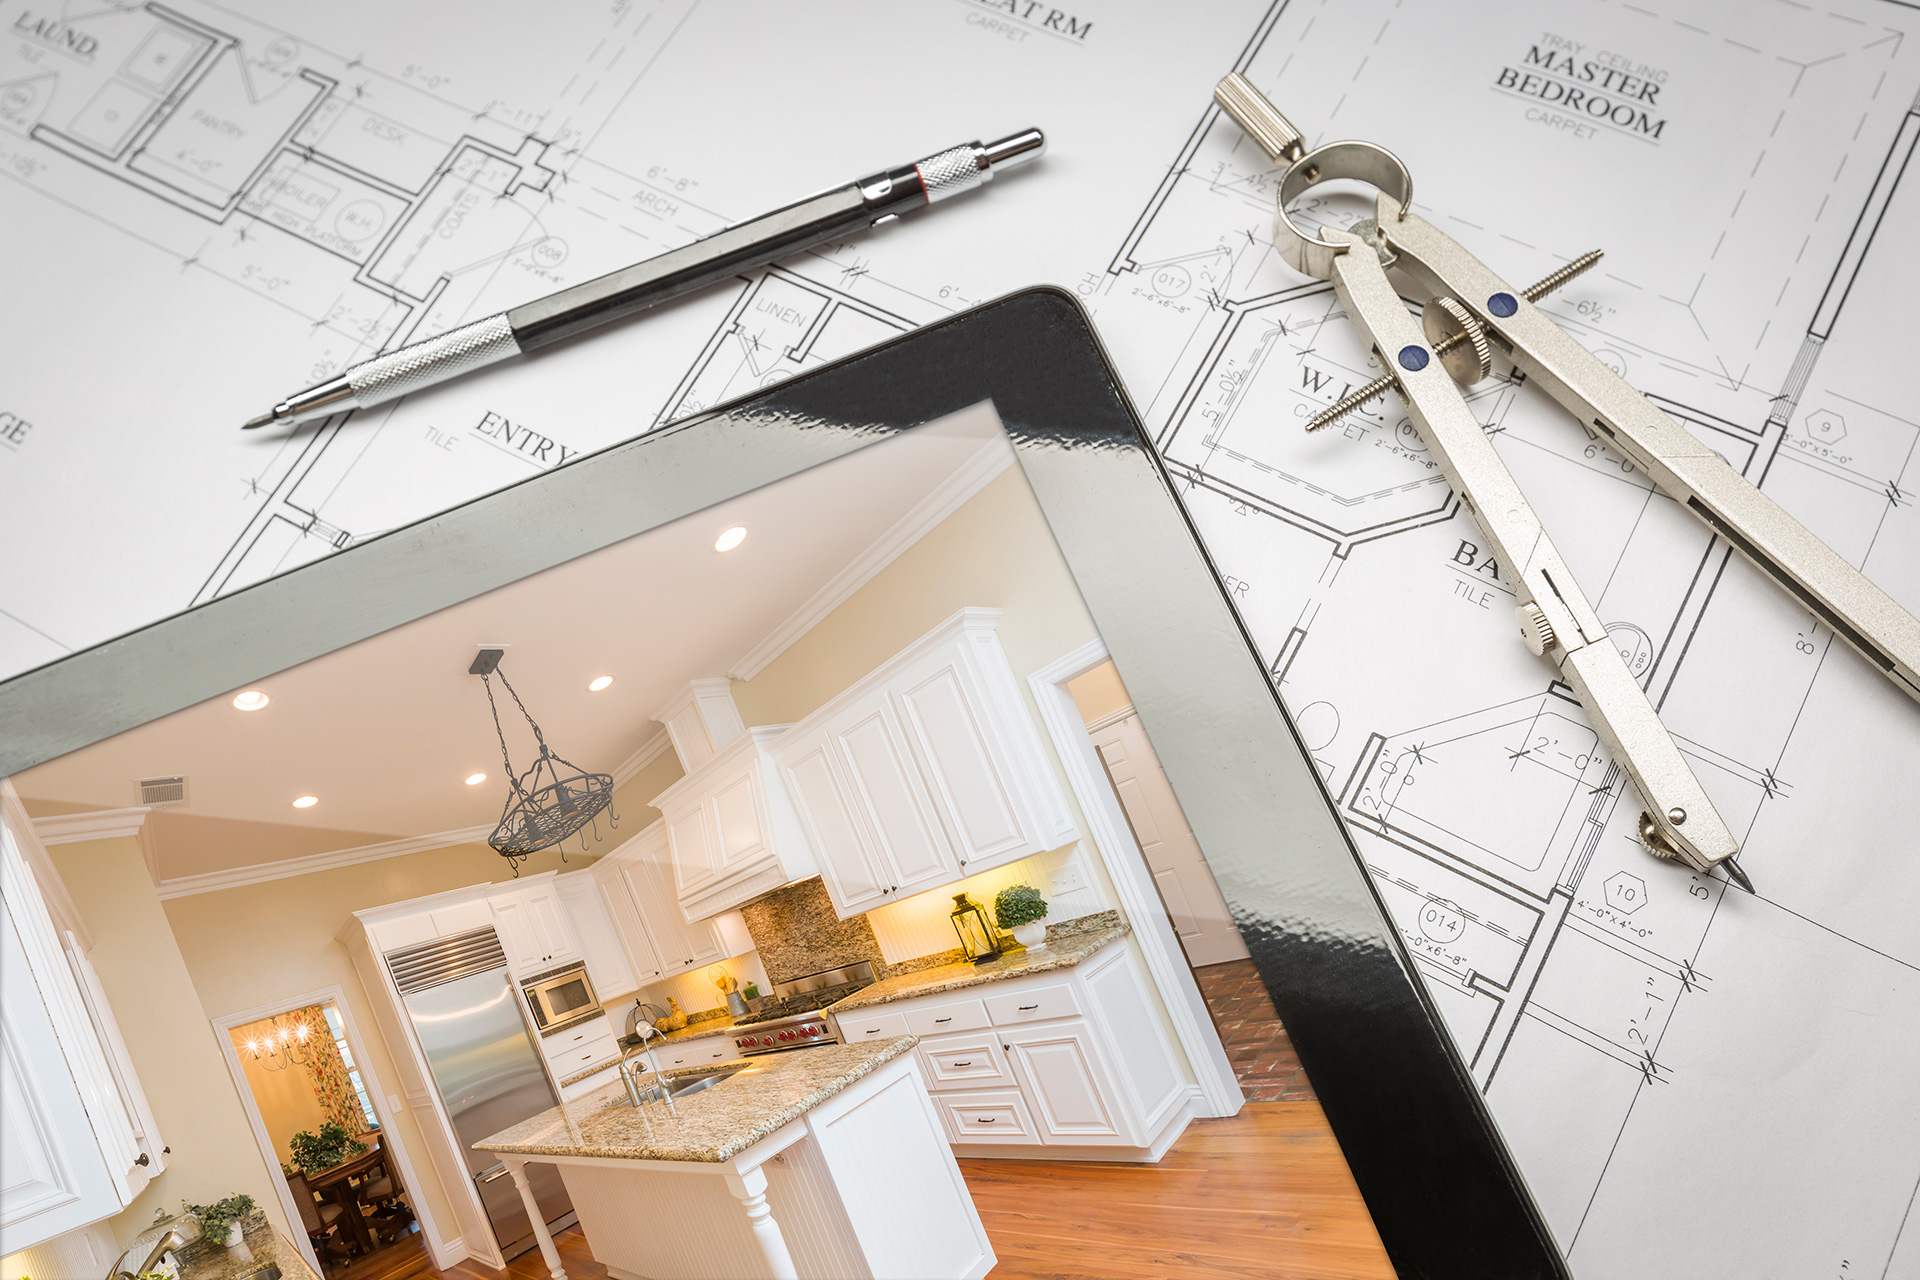 5 tips to safely buy kitchen cabinets online